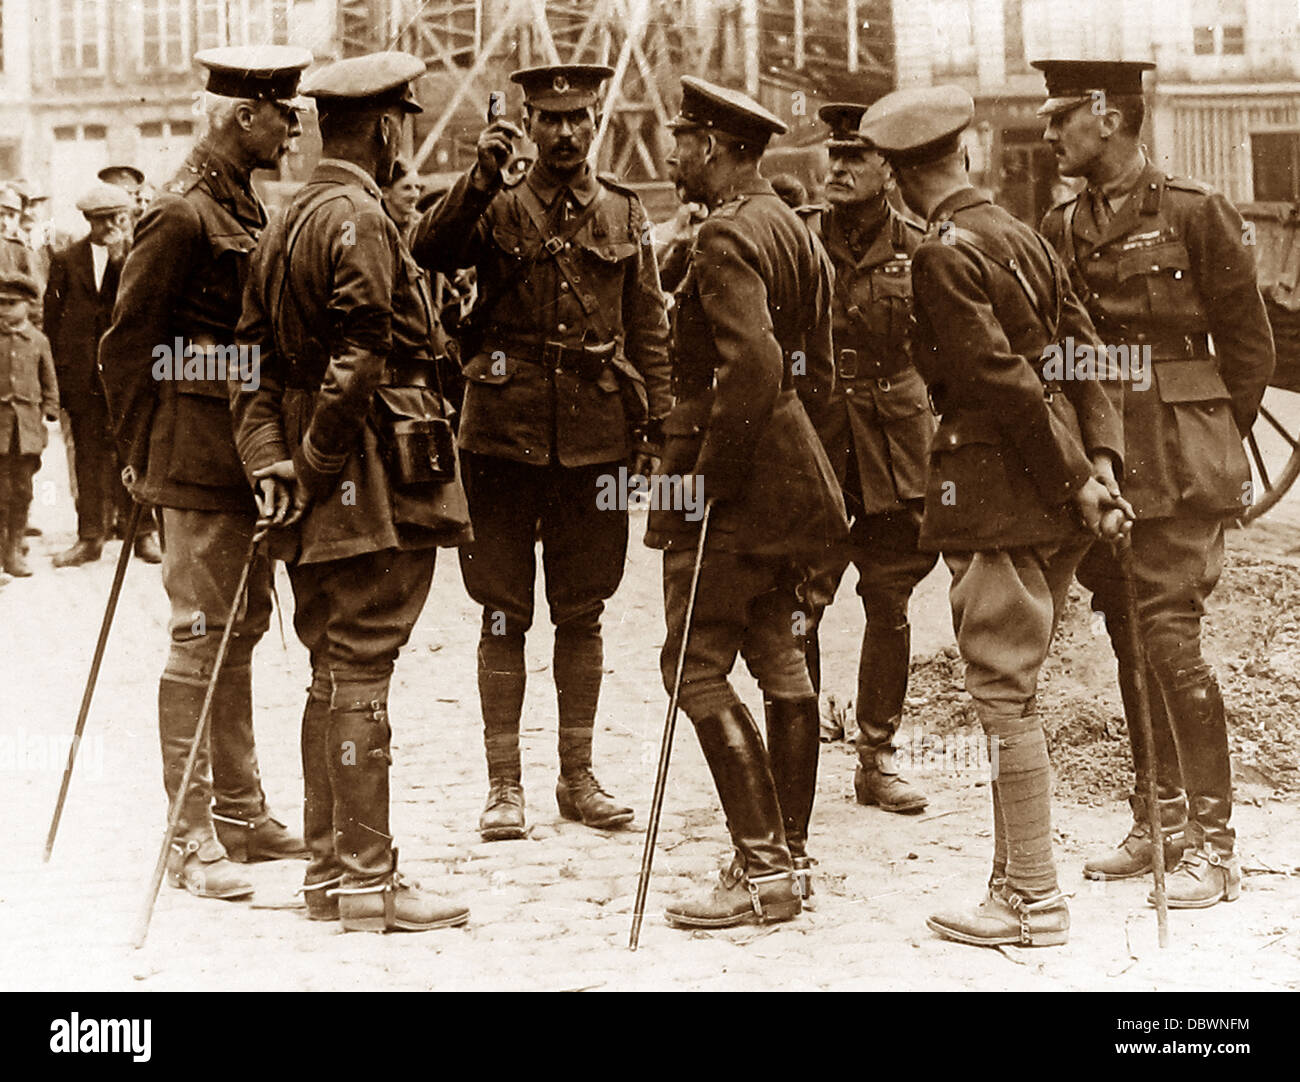 King and Prince of Wales visit France during WW1 - Stock Image